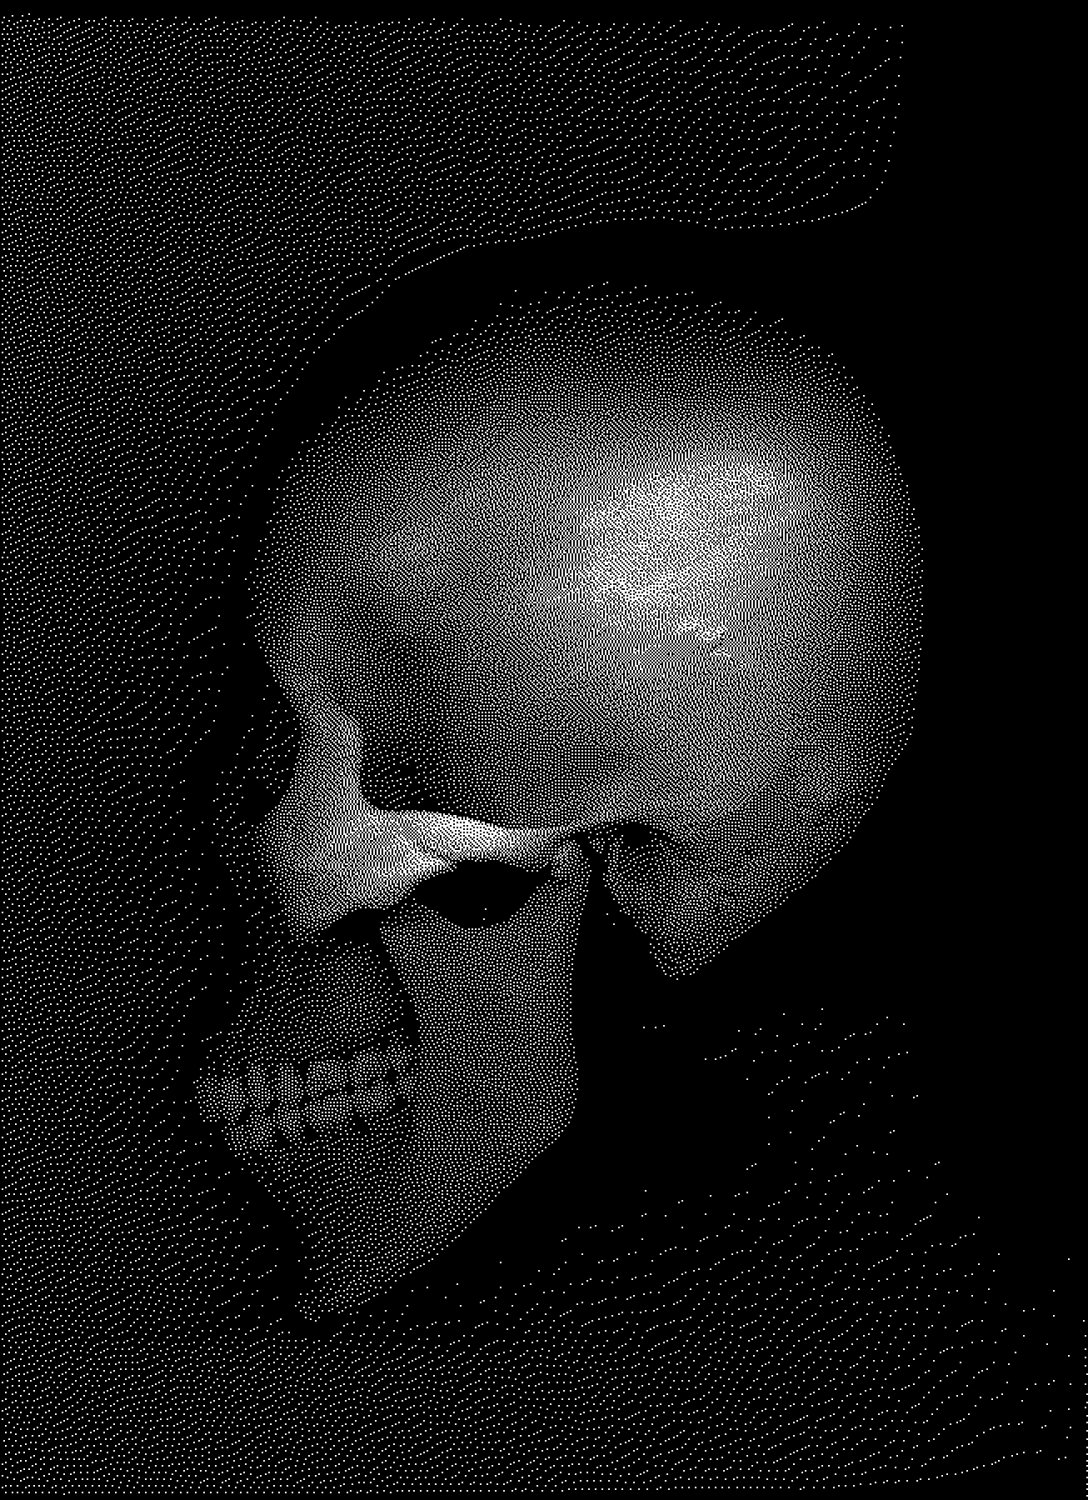 Skulls, contemporary art, by Tony Karp - Skull traveling through time - Techno-Impressionist Museum - Techno-Impressionism - art - beautiful - photo photography picture - by Tony Karp